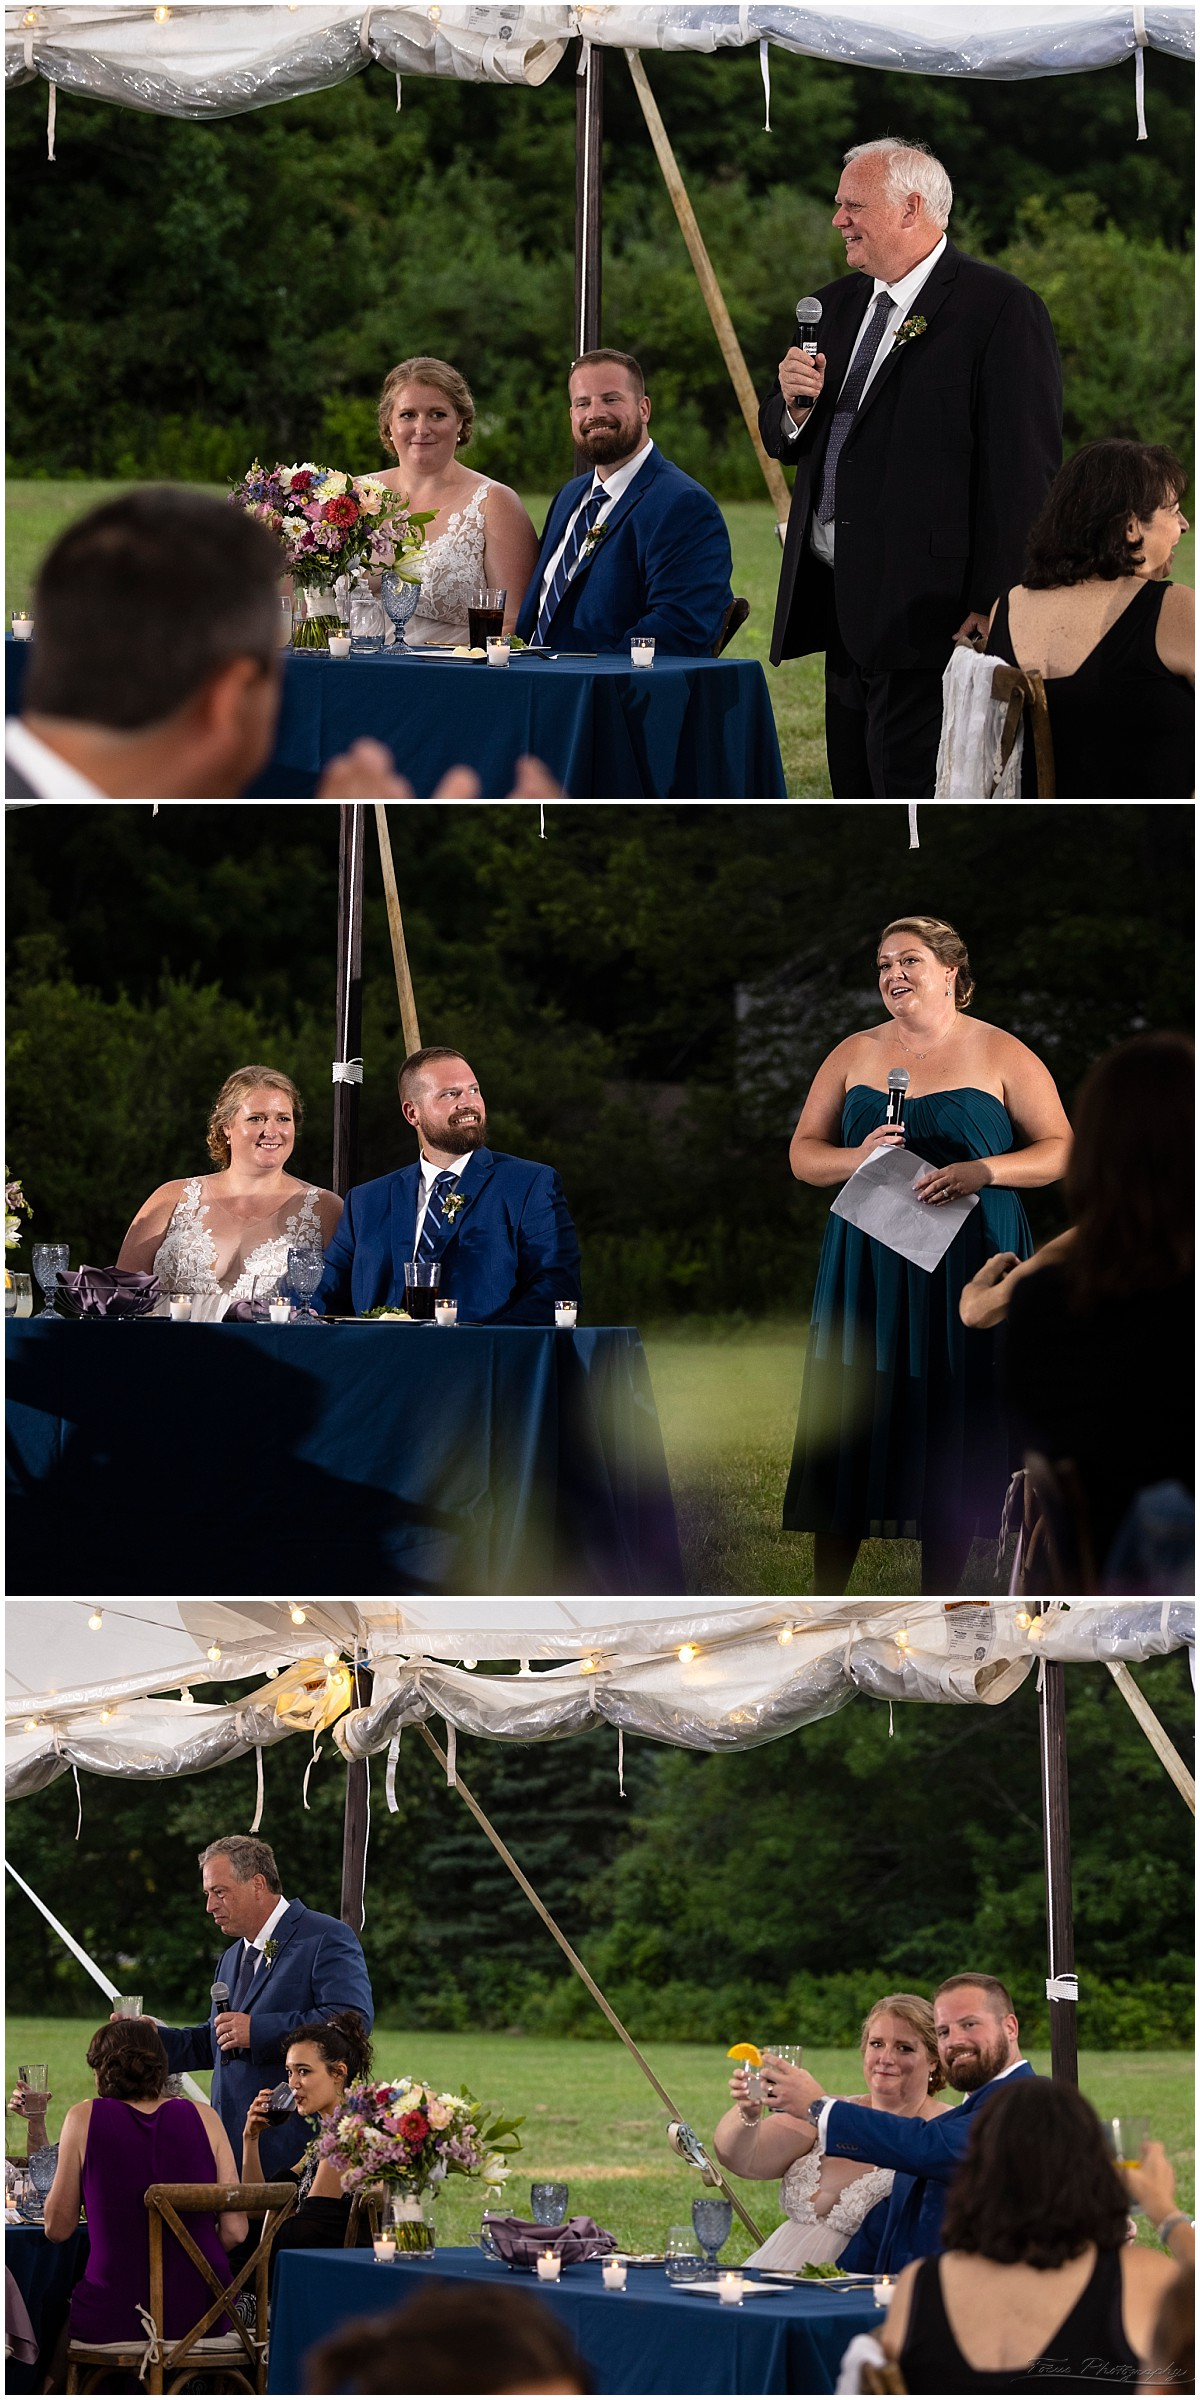 Father of the bride, maid of honor, and best man's toast at back